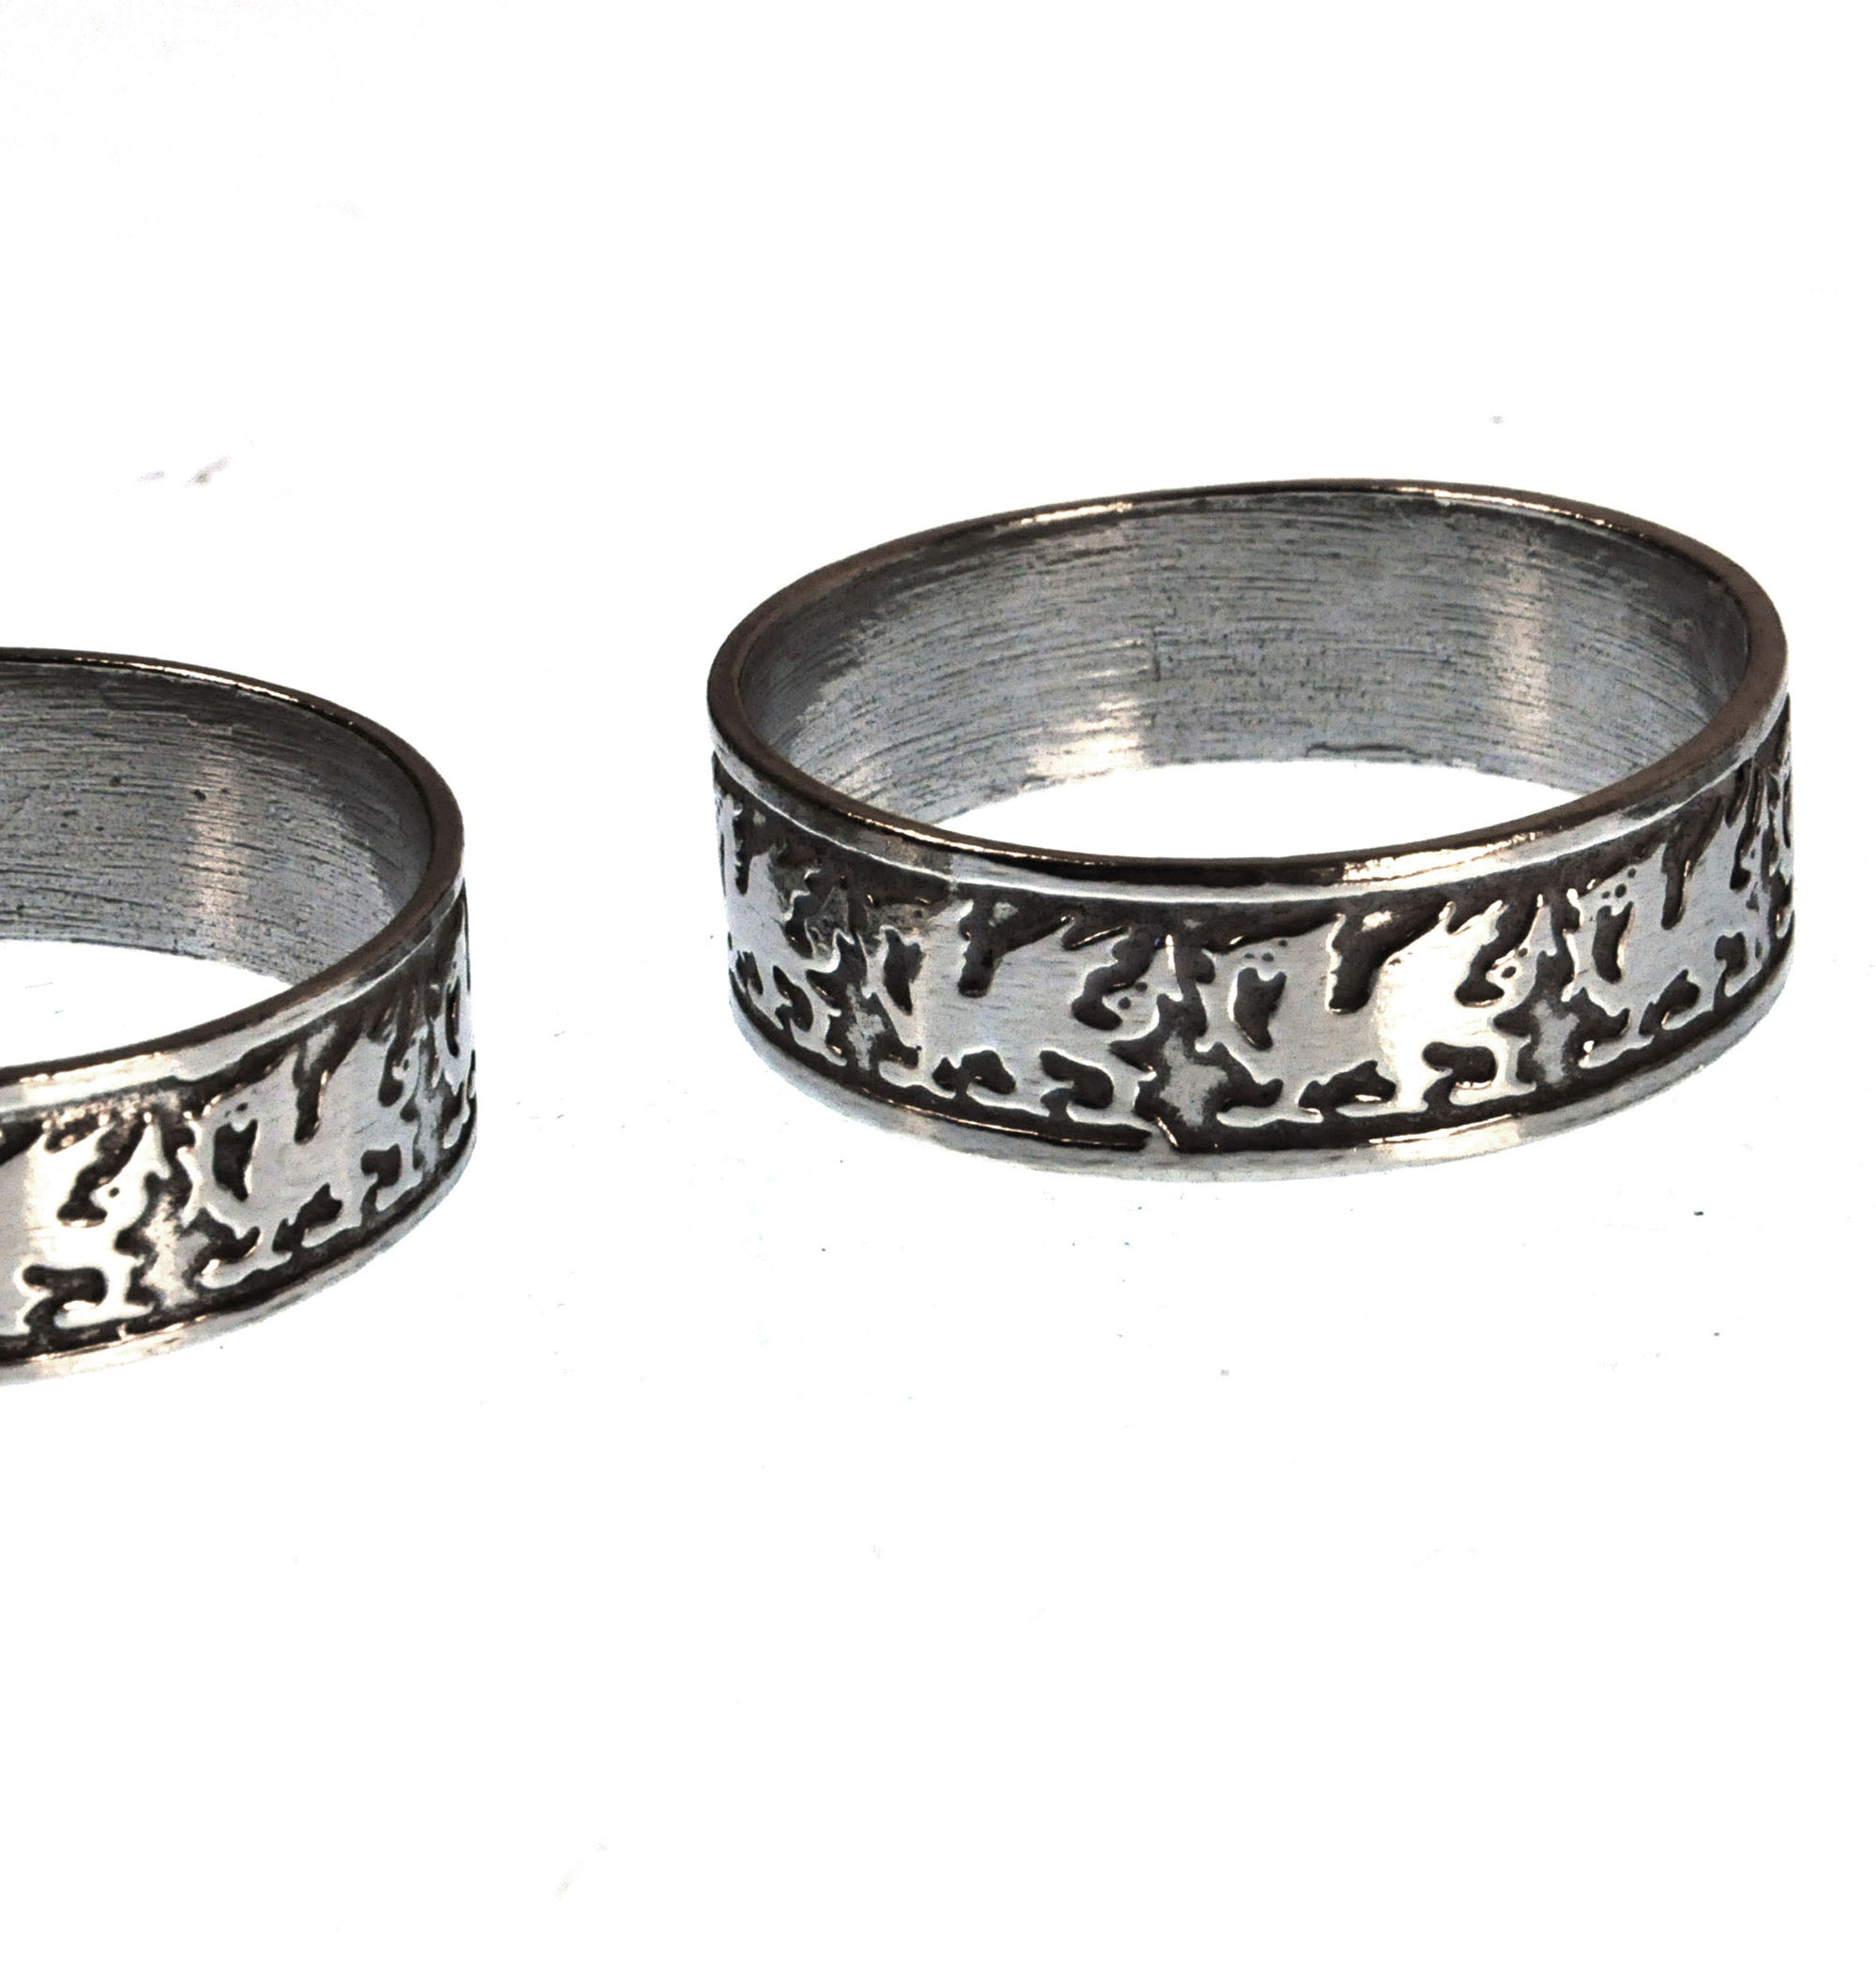 rings pair filigree metal round pewter